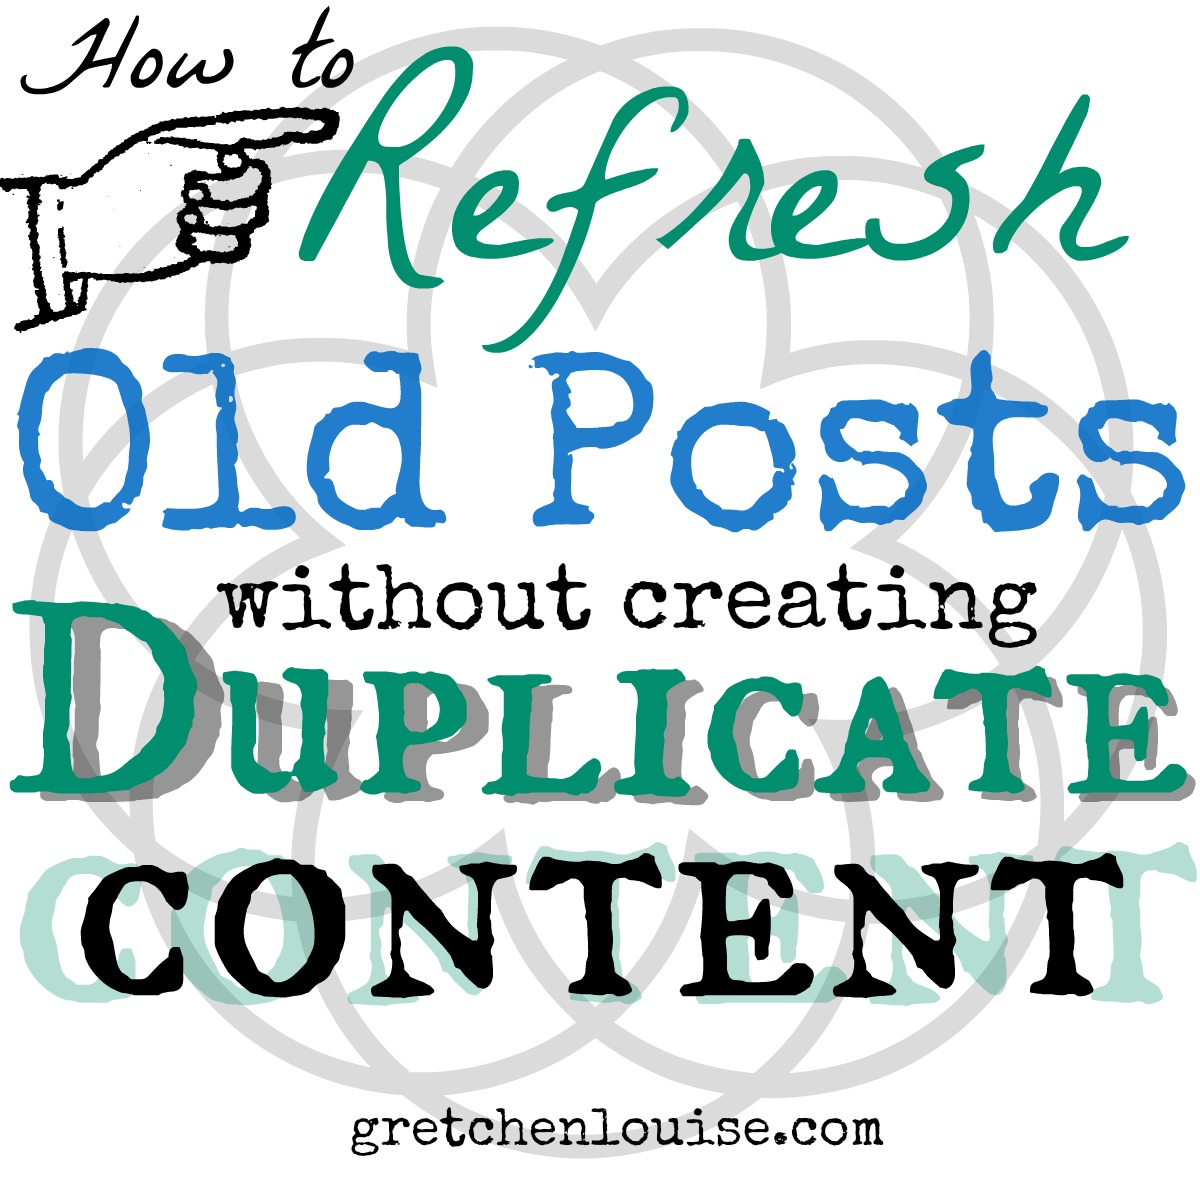 How to Refresh Old Posts (without creating duplicate content)